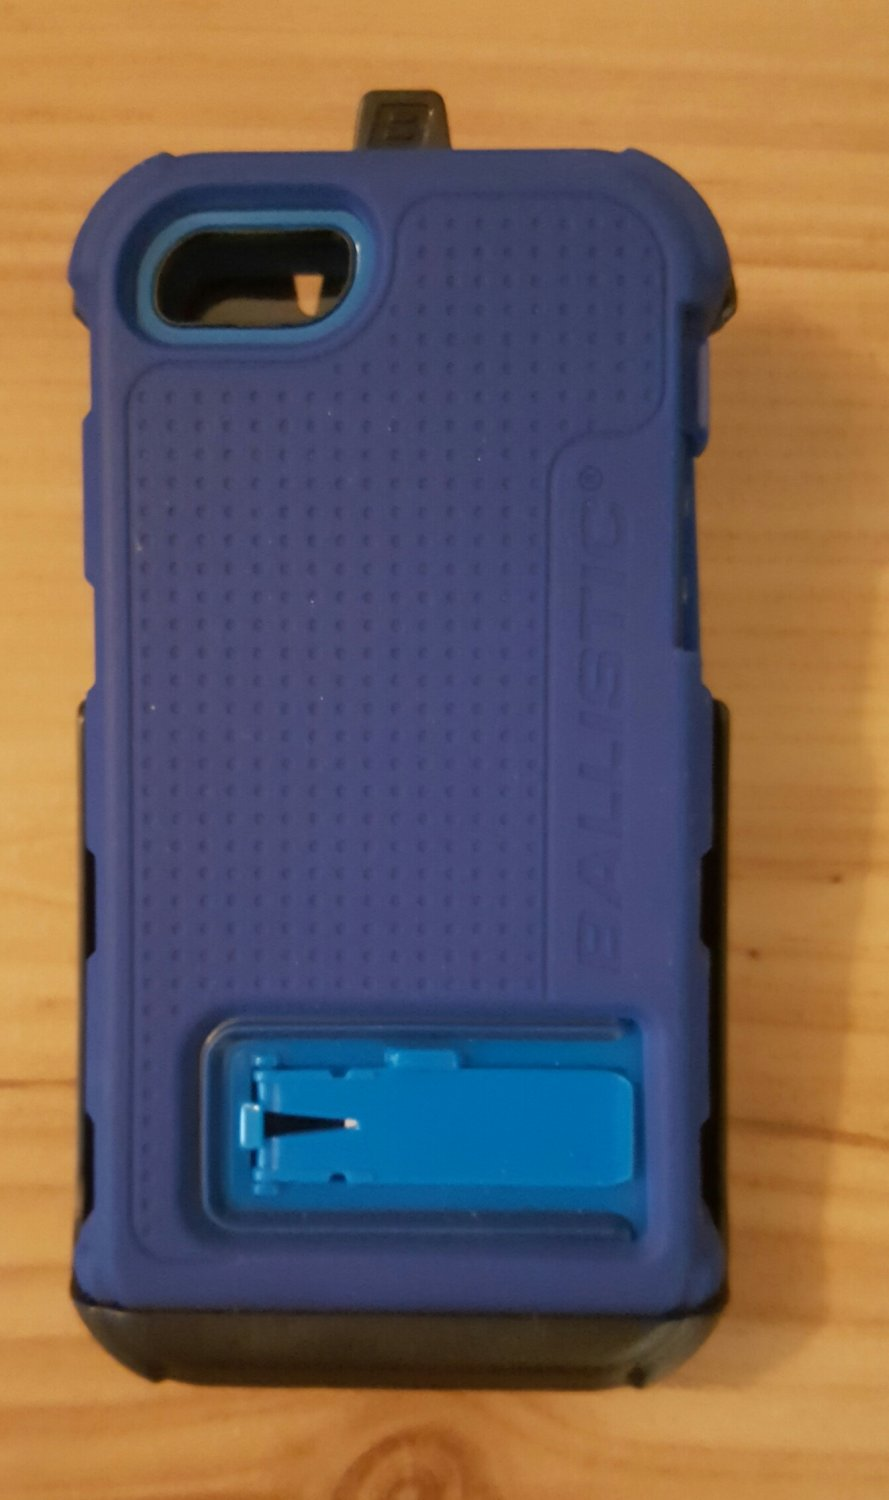 Ballistic HC Rugged Hard Core Case Holster Clip For iPhone 5 5S SE - Blue